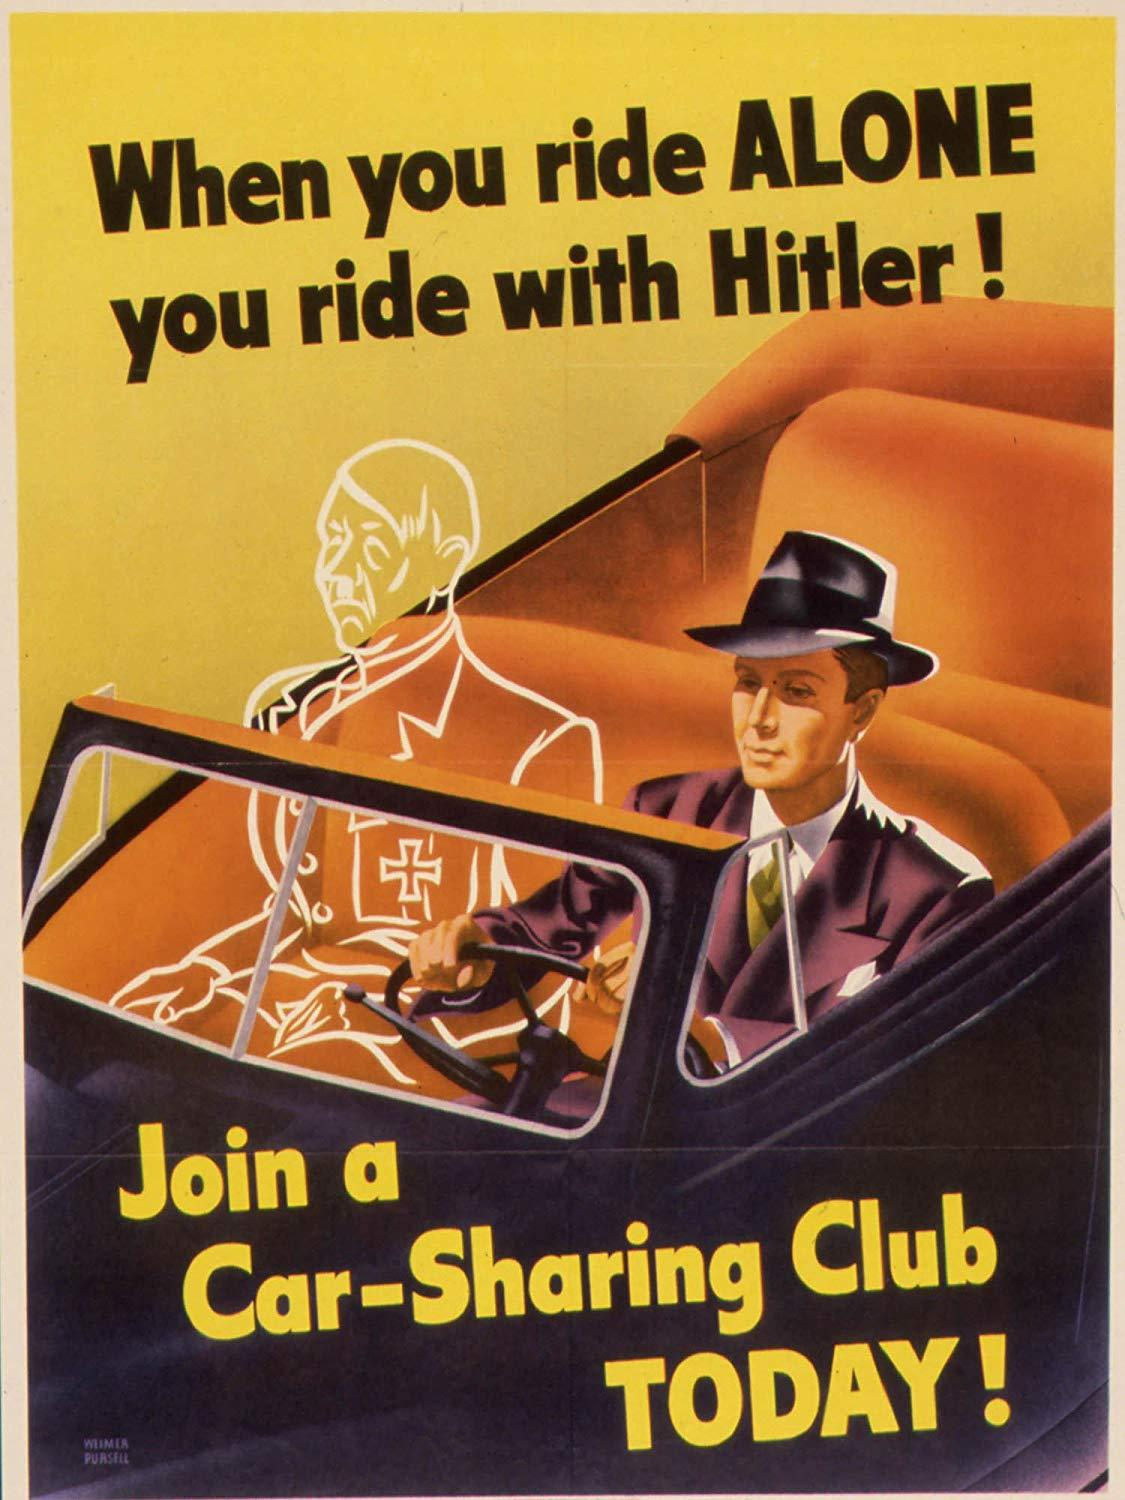 illustrative poster of a man driving a car and the outline of an invisible figure sitting in the passenger seat